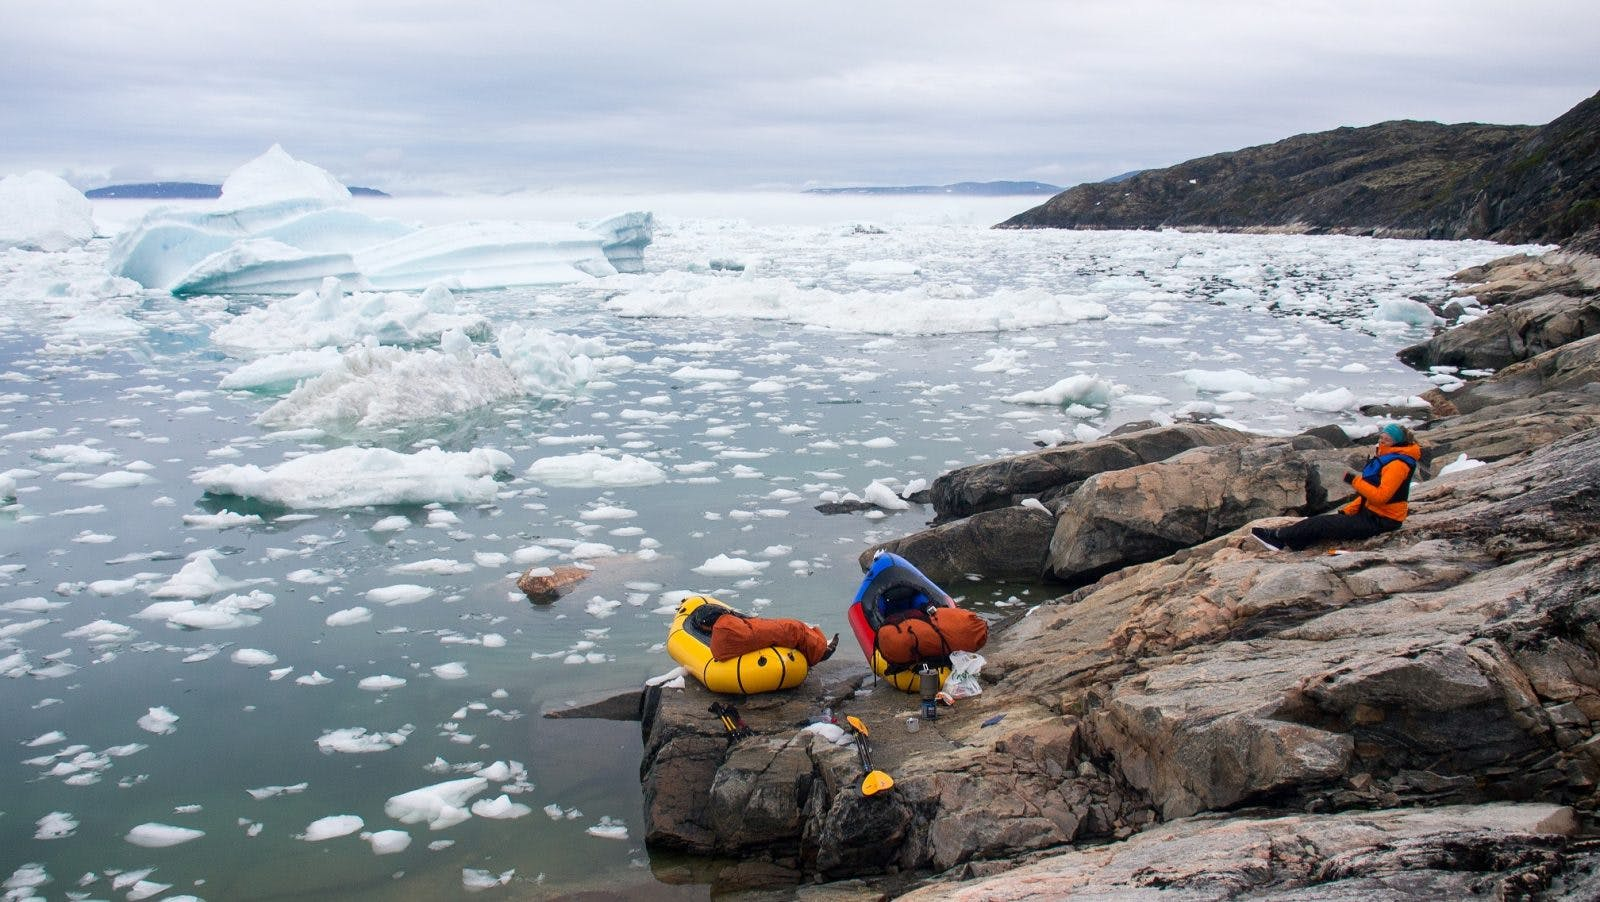 Paddling through a labyrinth of ice near Ilulissat Ice Fjord, West Greenland. We hugged the coastline for 7km while bumping from one ice chunk to the next, to avoid a difficult hiking section on steep and wet rock slabs.